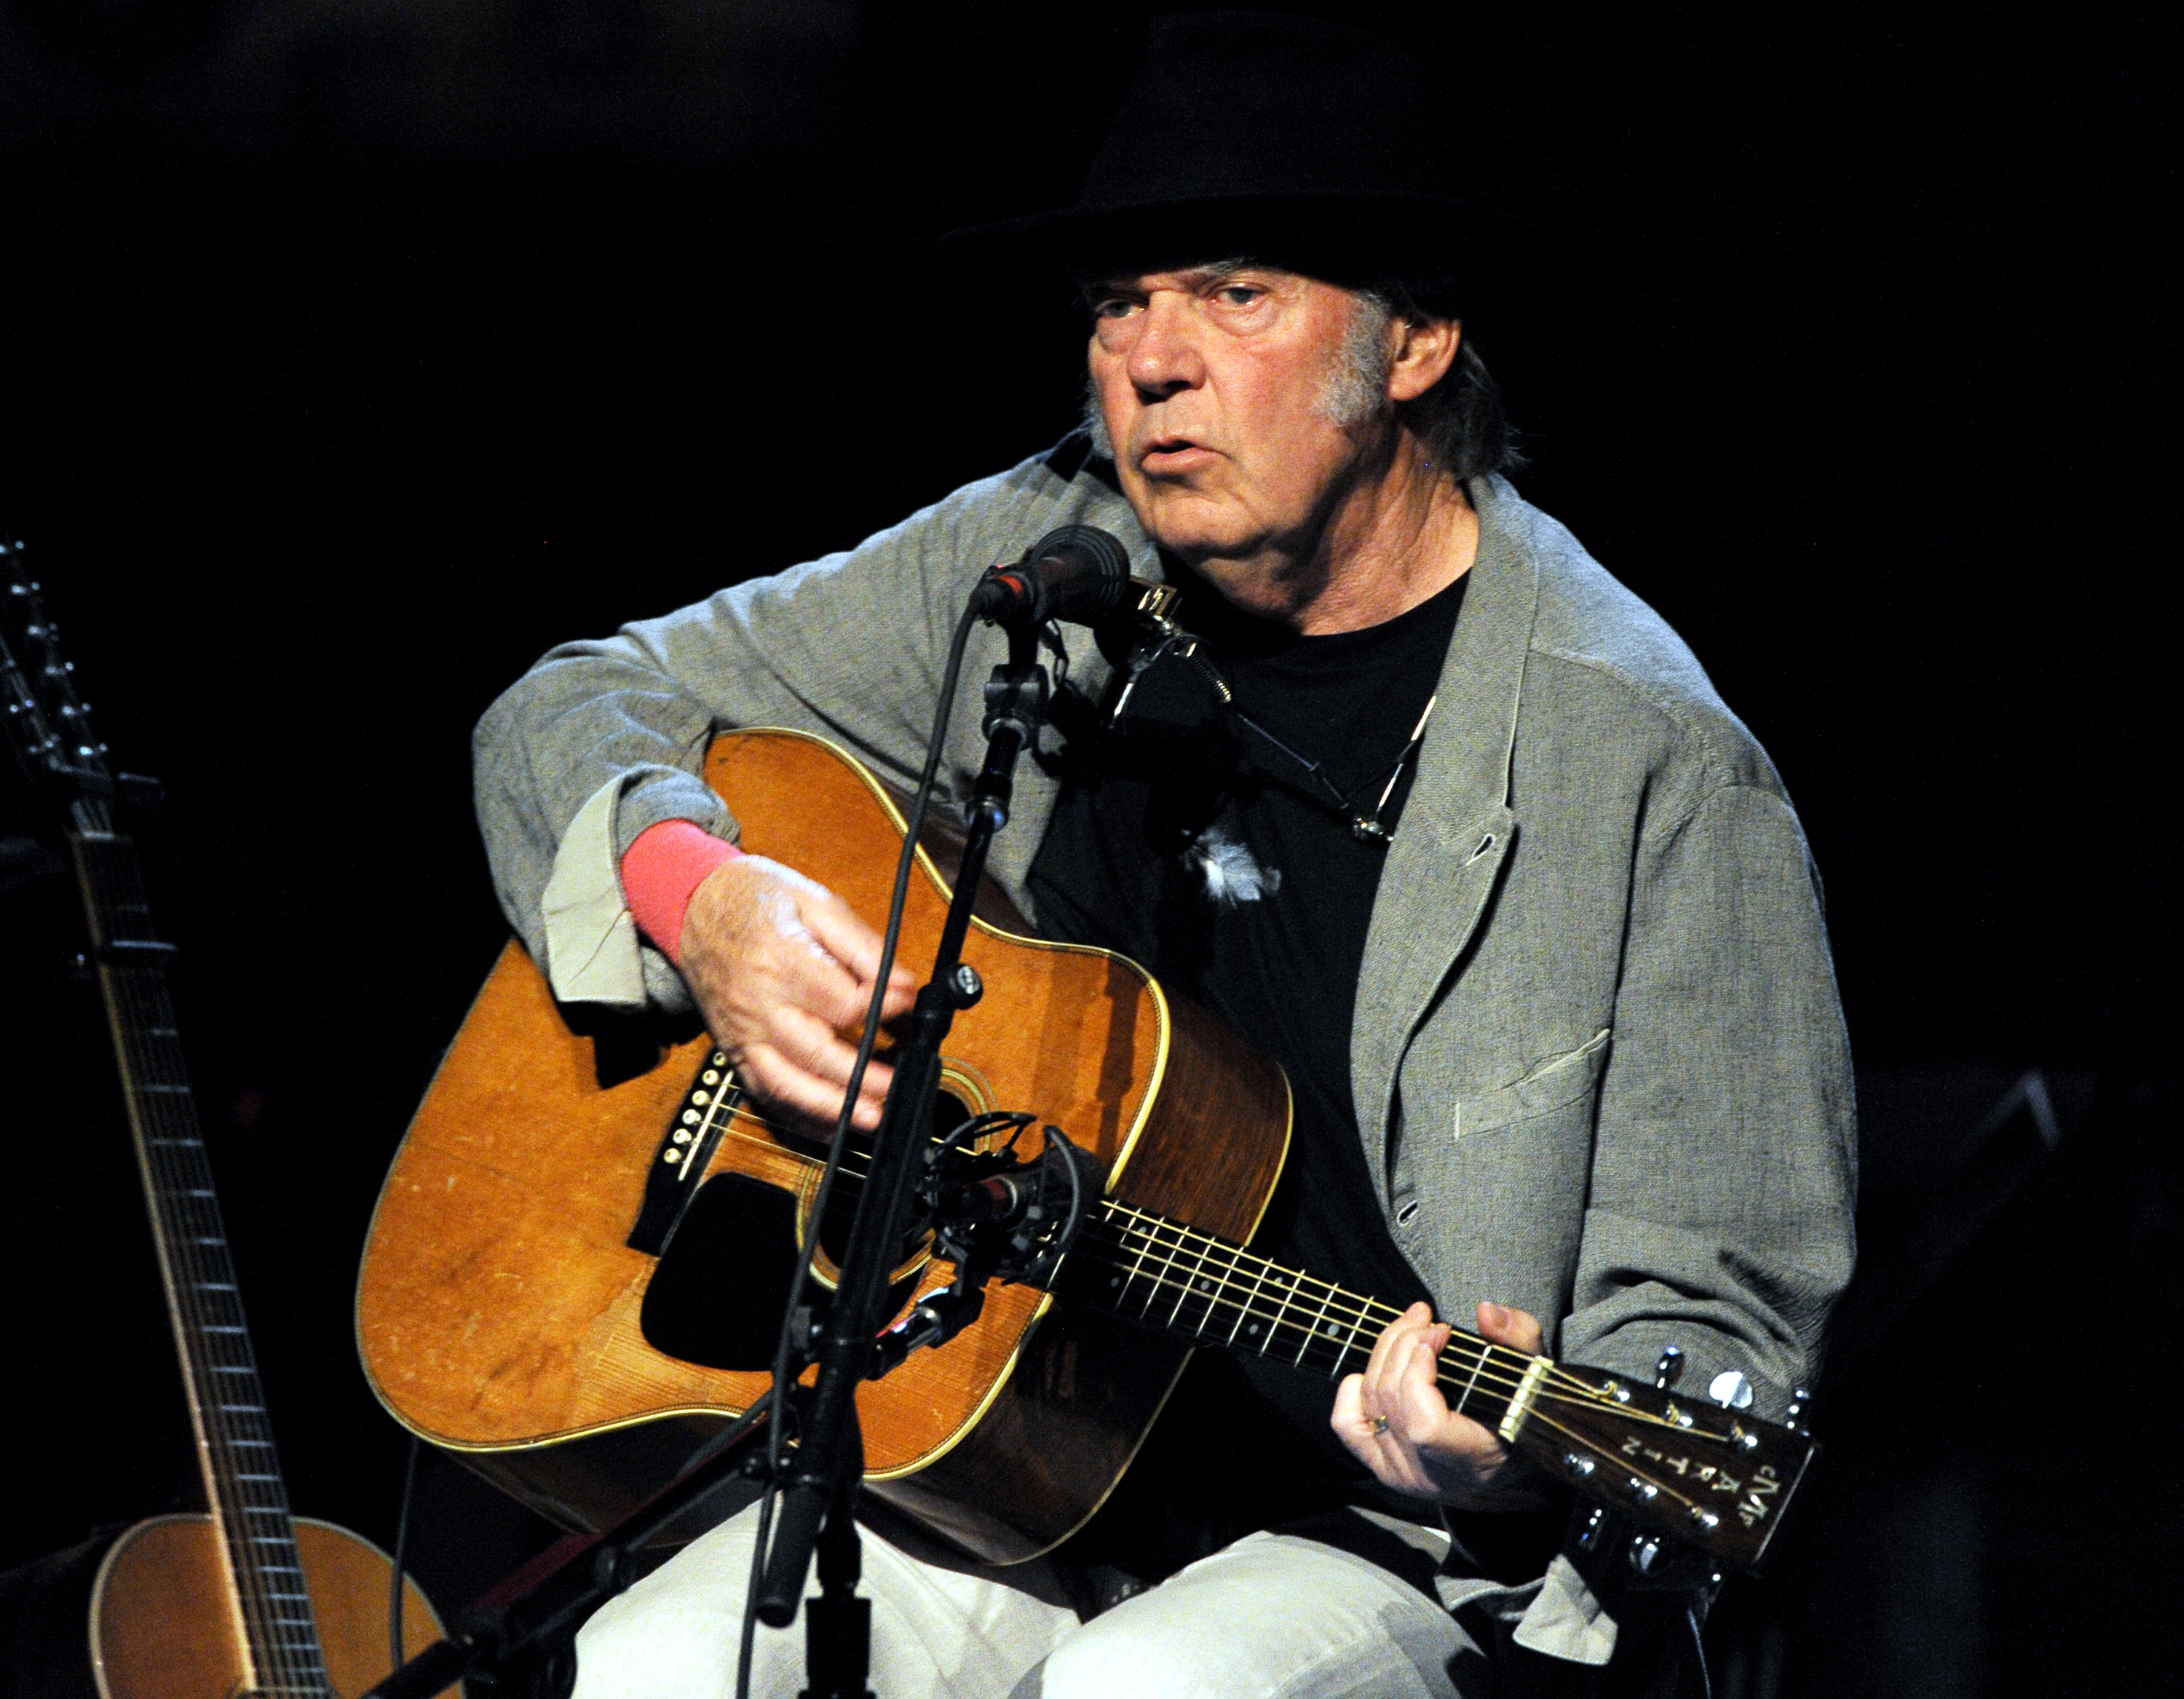 LOS ANGELES, CA - MARCH 29:  Singer/songwriter Neil Young performs at the Dolby Theatre on March 29, 2014 in Los Angeles, Cal